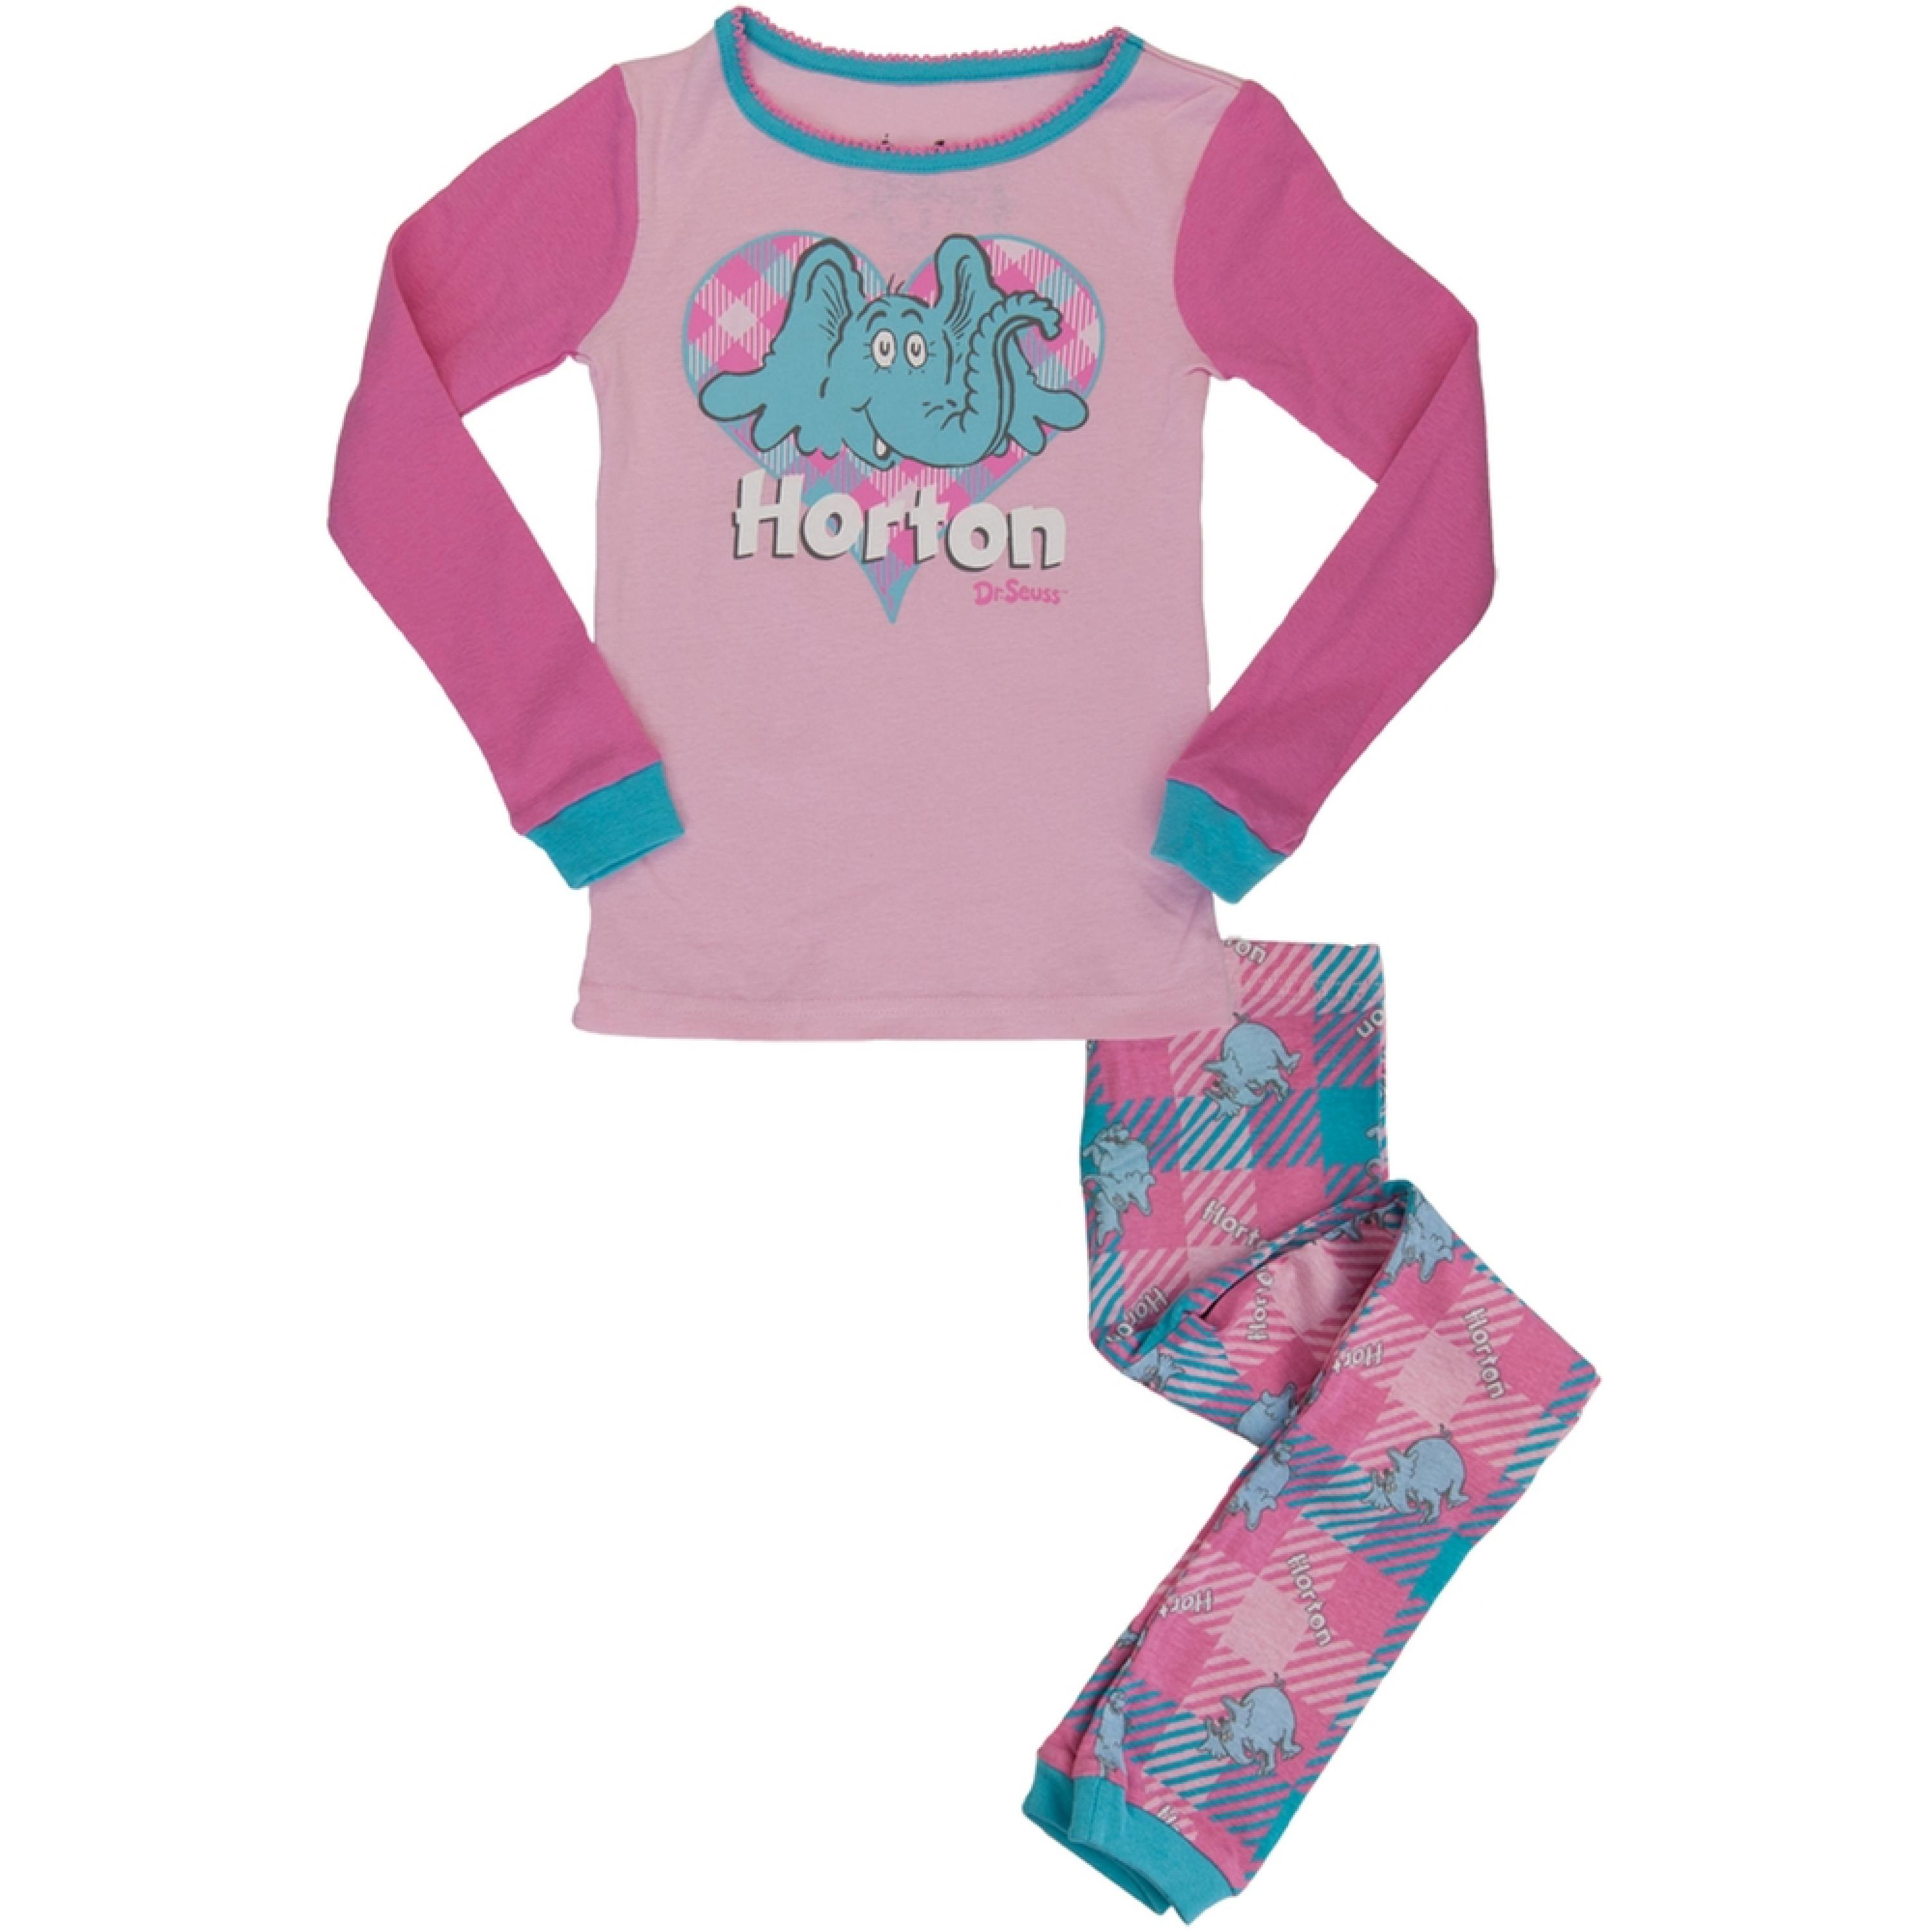 Dr. Seuss - Horton Heart Infant Pajama Set